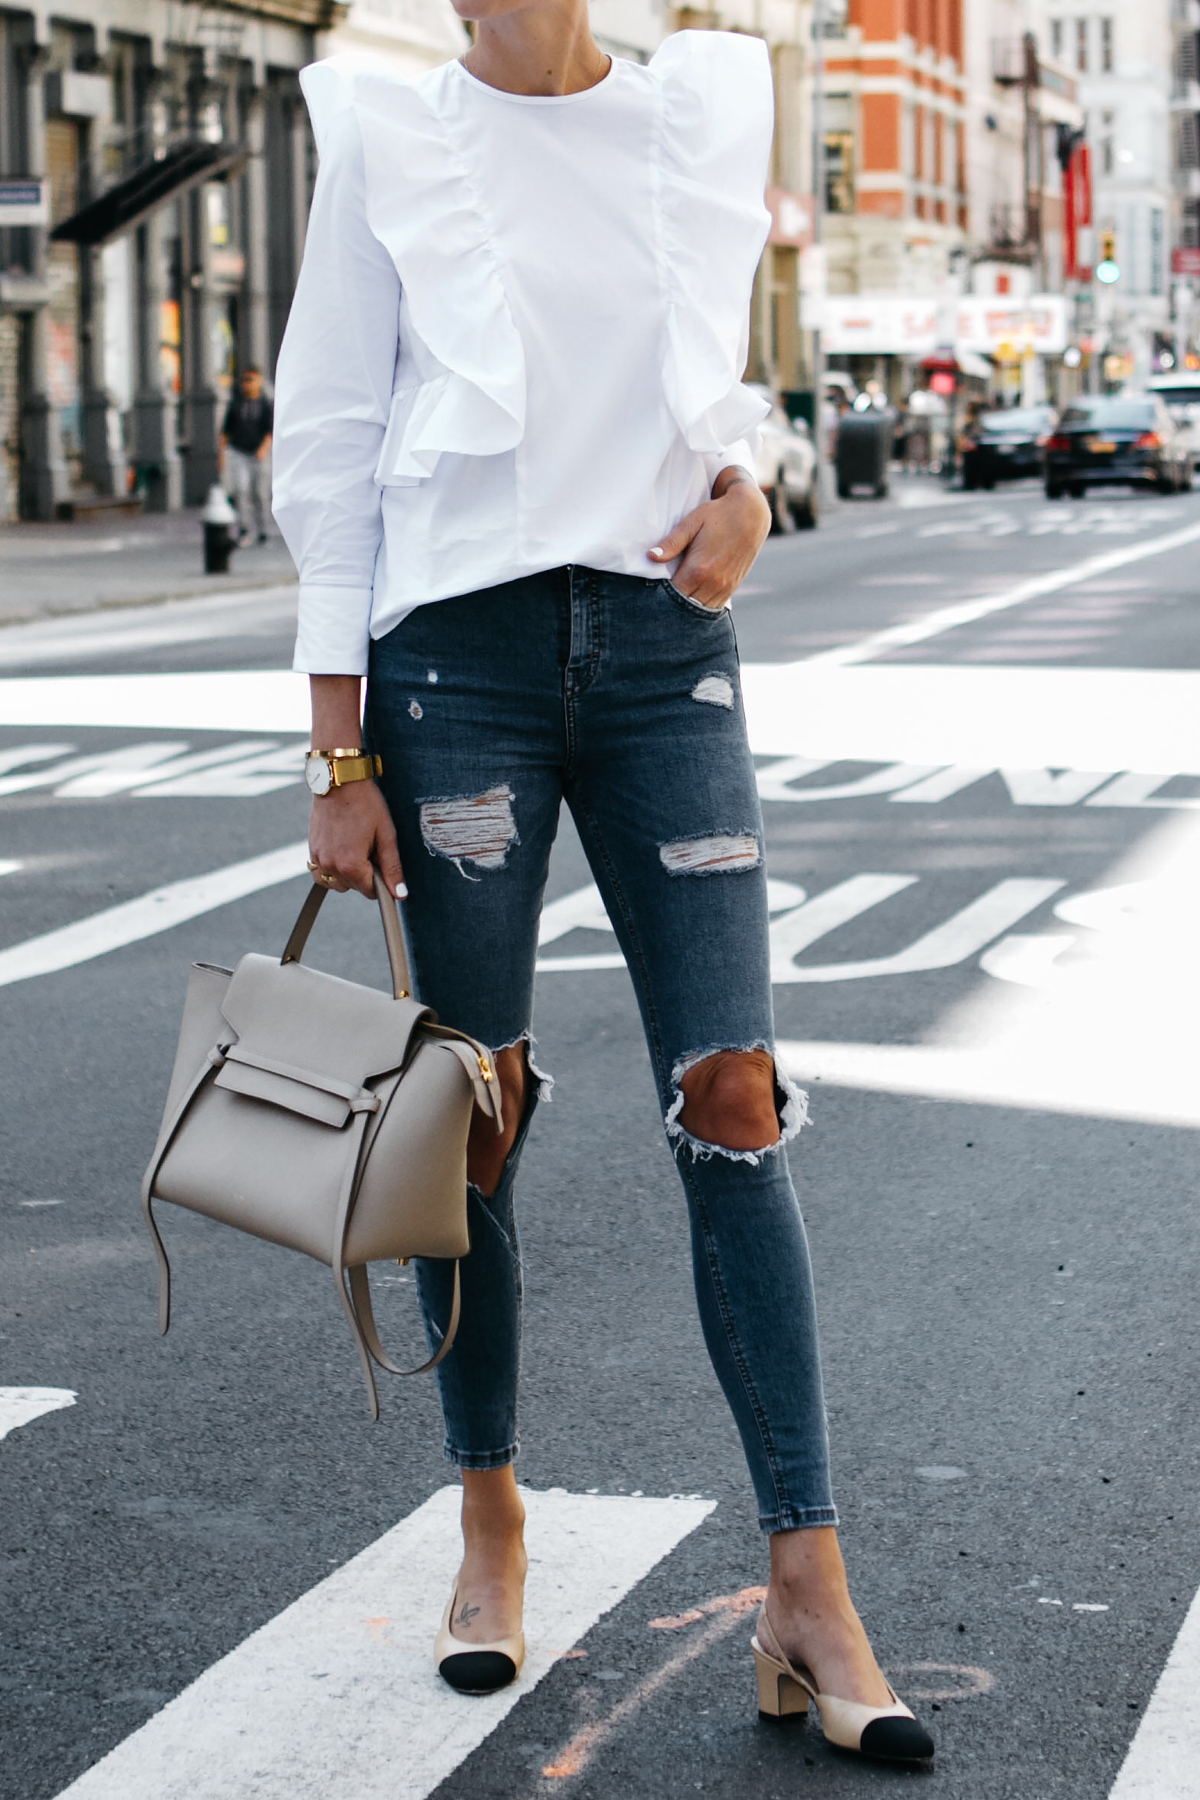 Zara White Ruffle Shirt Topshop Denim Ripped Skinny Jeans Chanel Slingbacks Celine Belt Bag Fashion Jackson Dallas Blogger Fashion Blogger Street Style NYFW